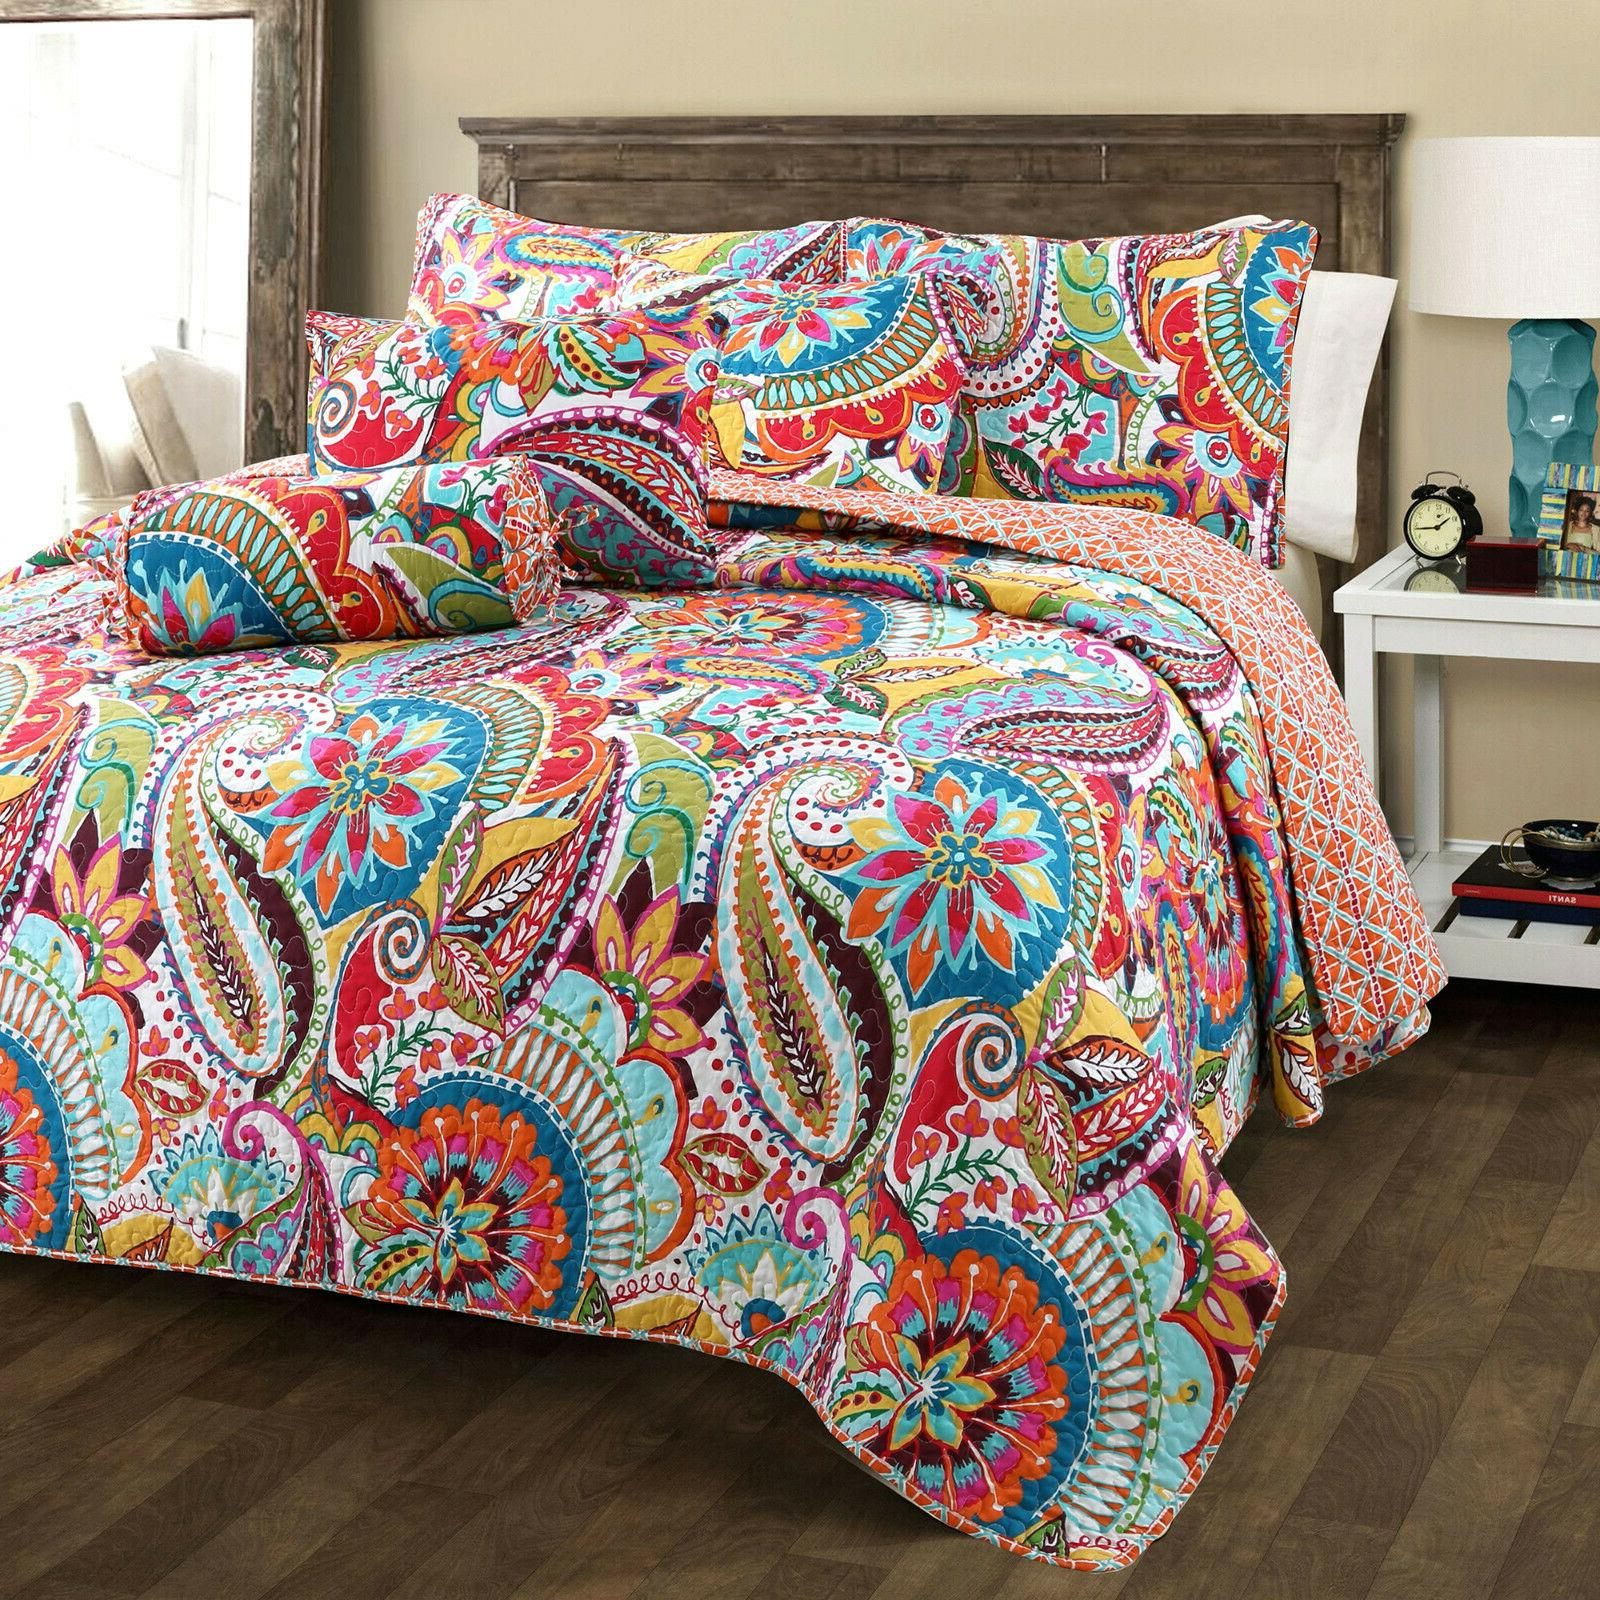 Gypsy 3-Piece Reversible Quilt Set, Bedspread, Coverlet